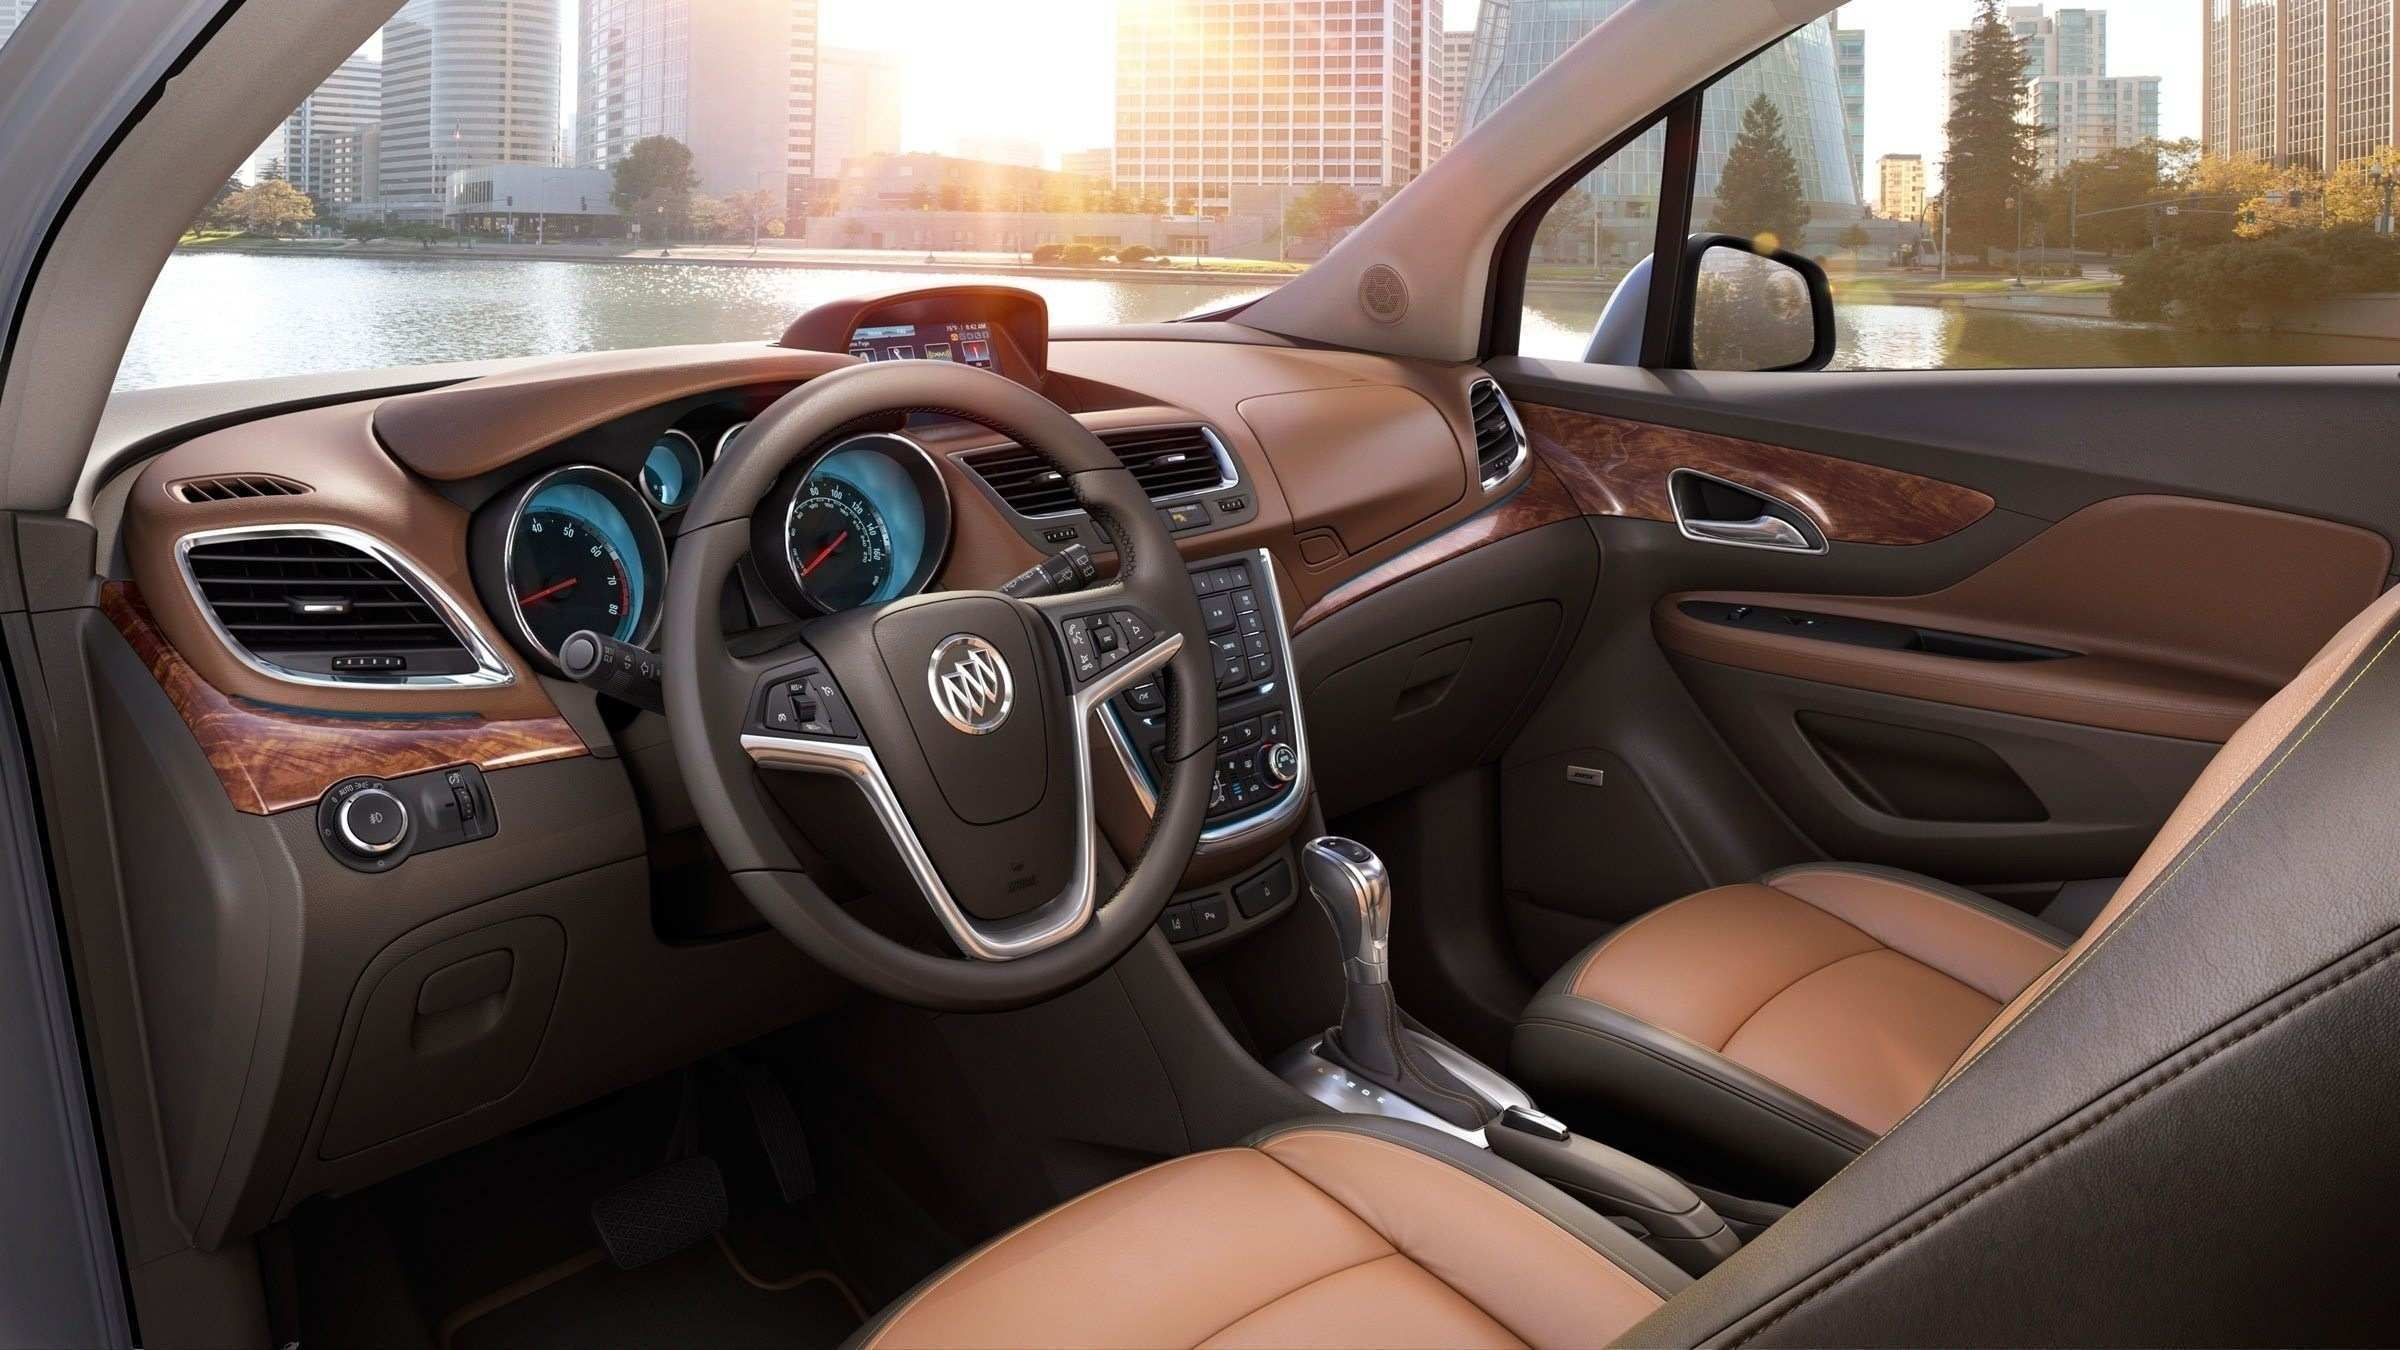 18 New 2019 Buick Anthem Spesification for 2019 Buick Anthem